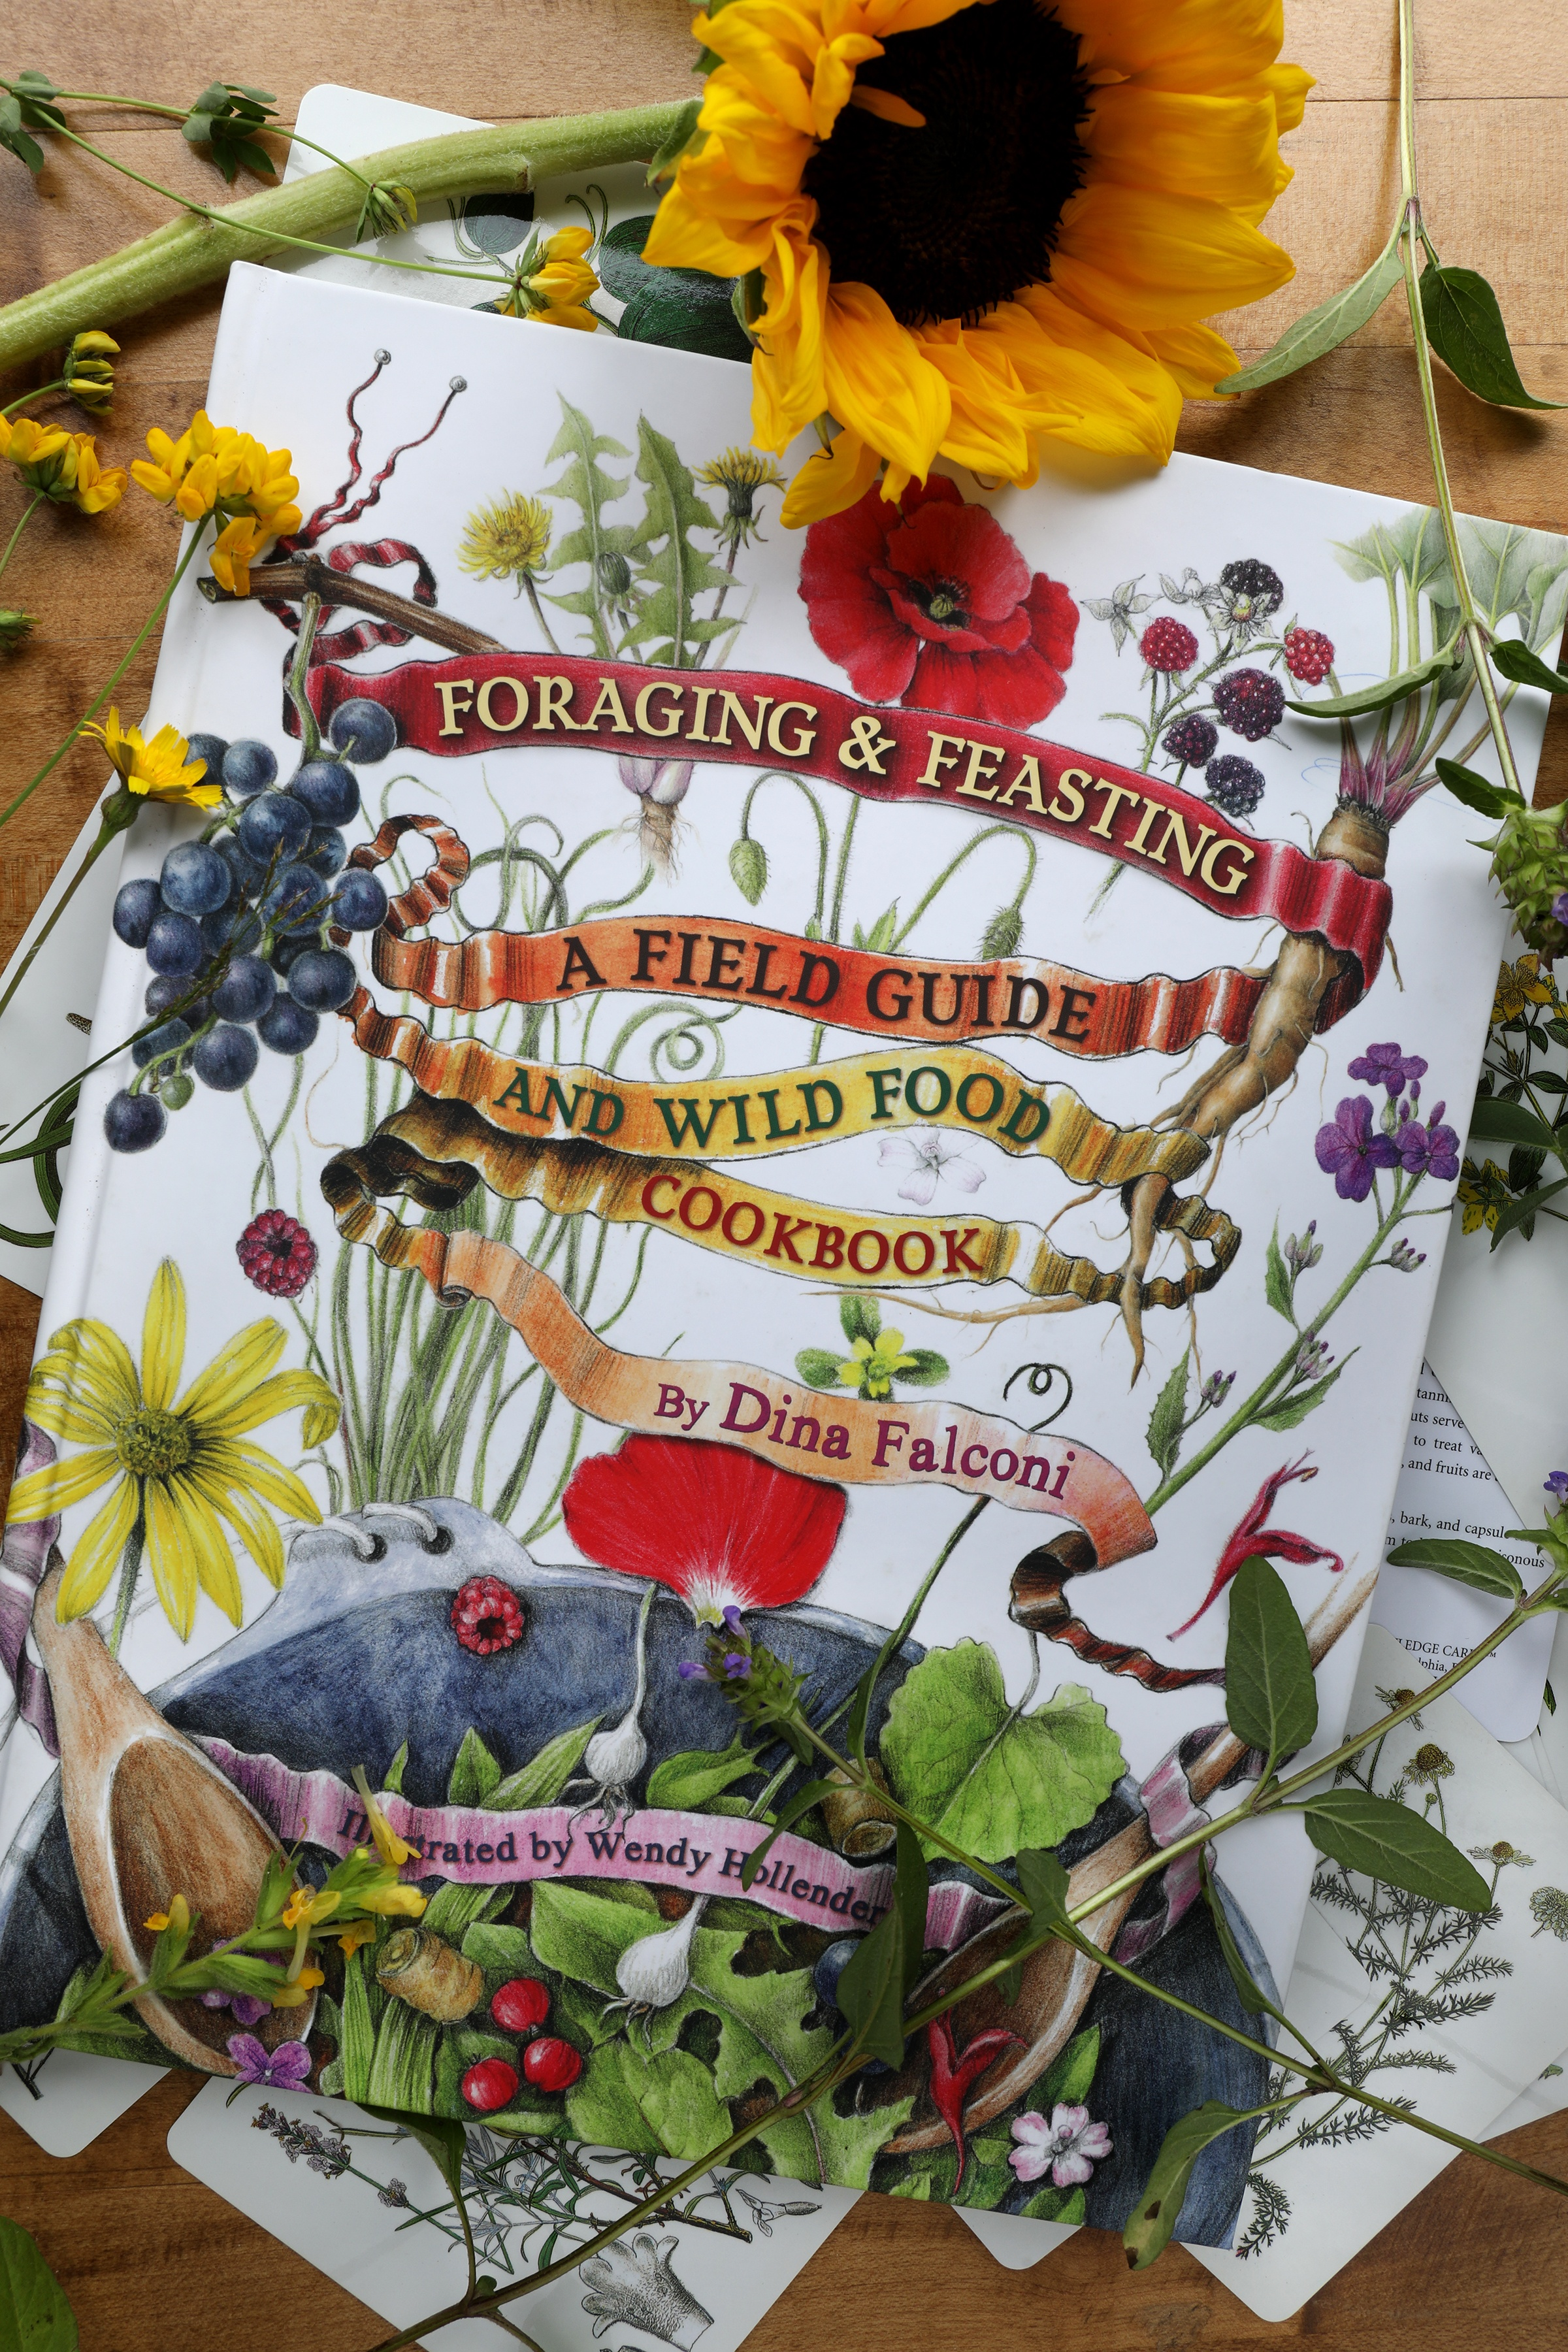 Foraging and Feasting guide for finding wild food book laying out on desk